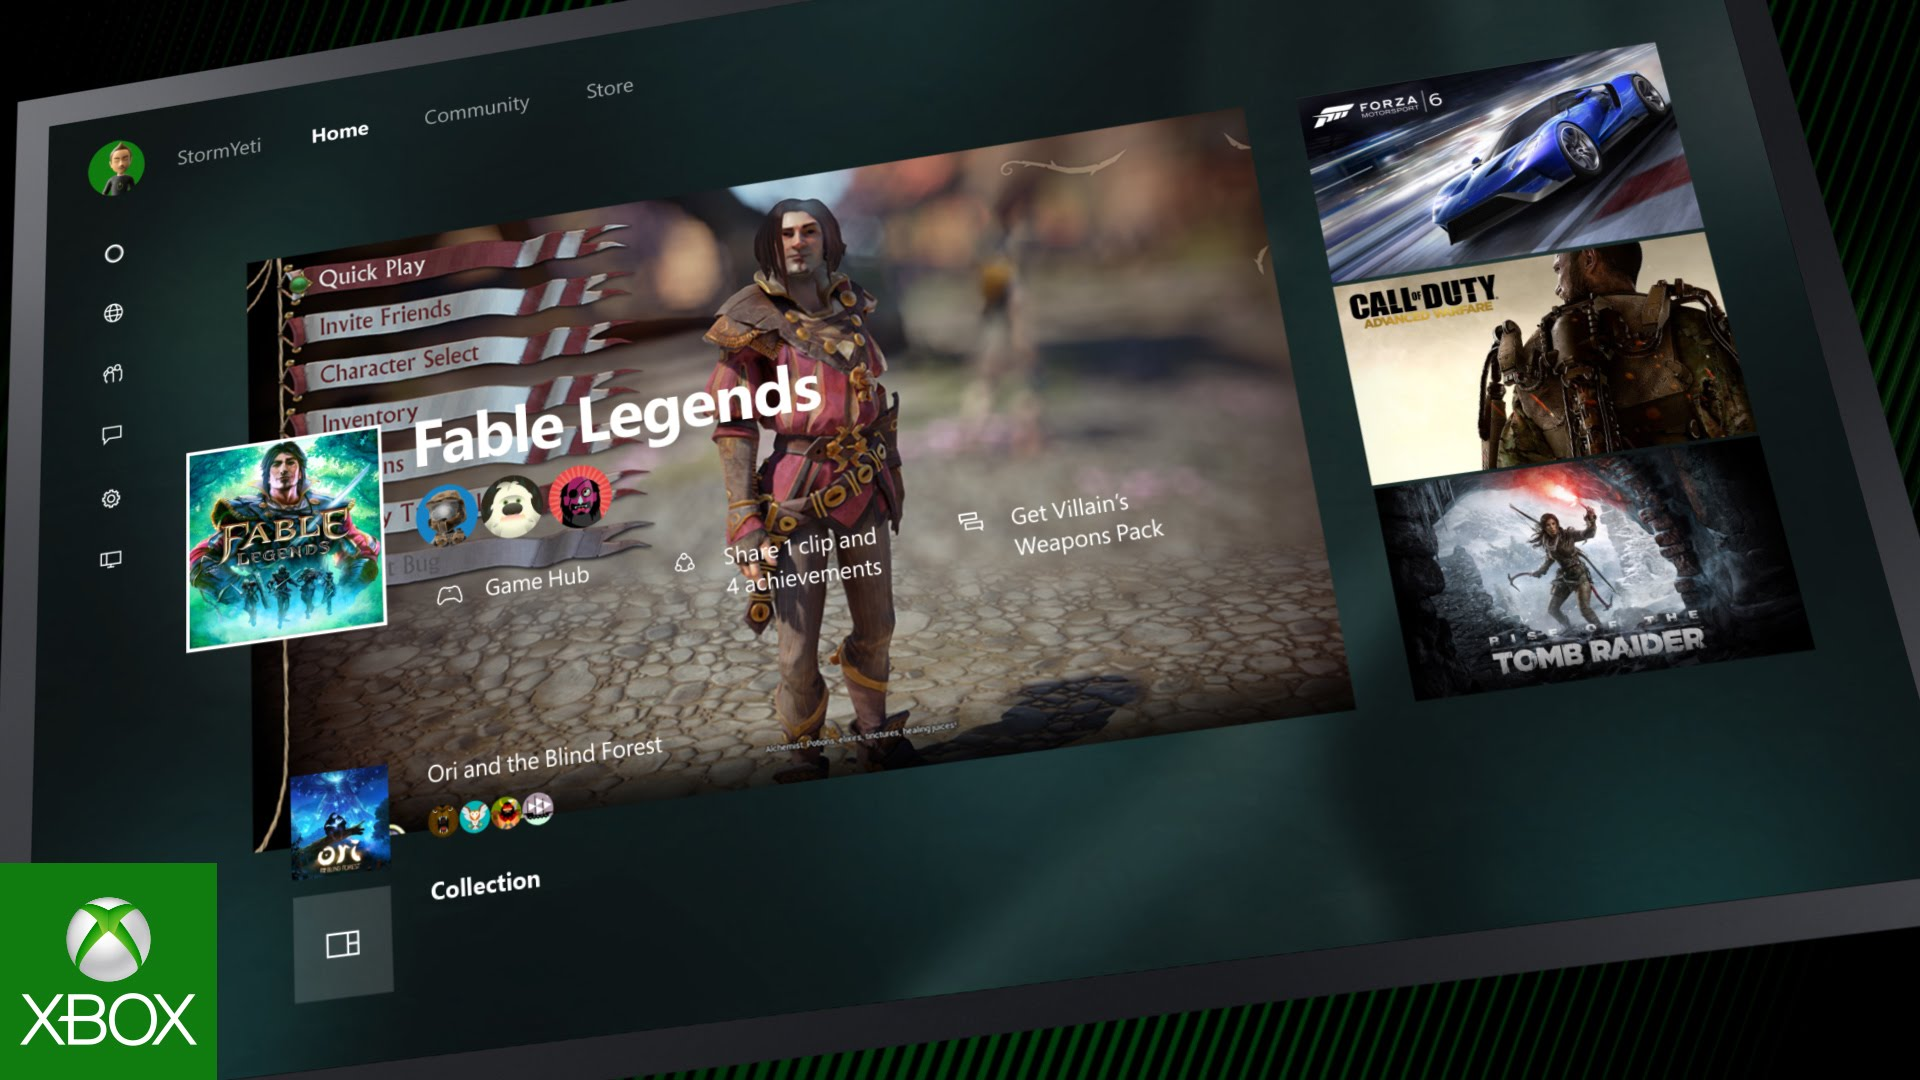 Xbox One Experience Problems? Common Issues and Fixes Inside